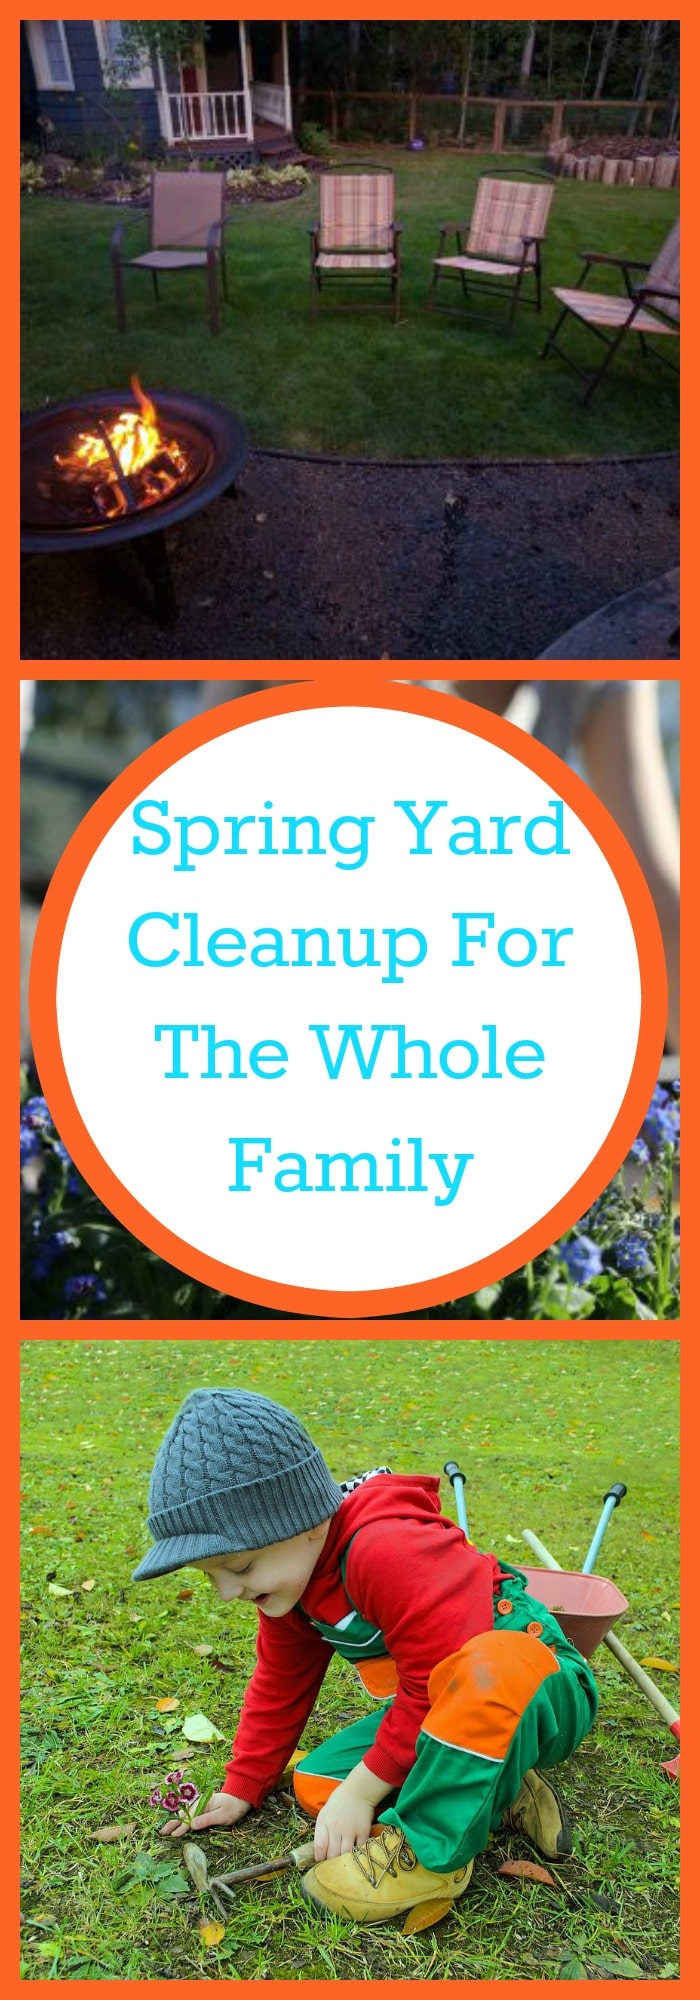 Spring--Spring Yard Cleanup For the Whole Family--The Organized Mom